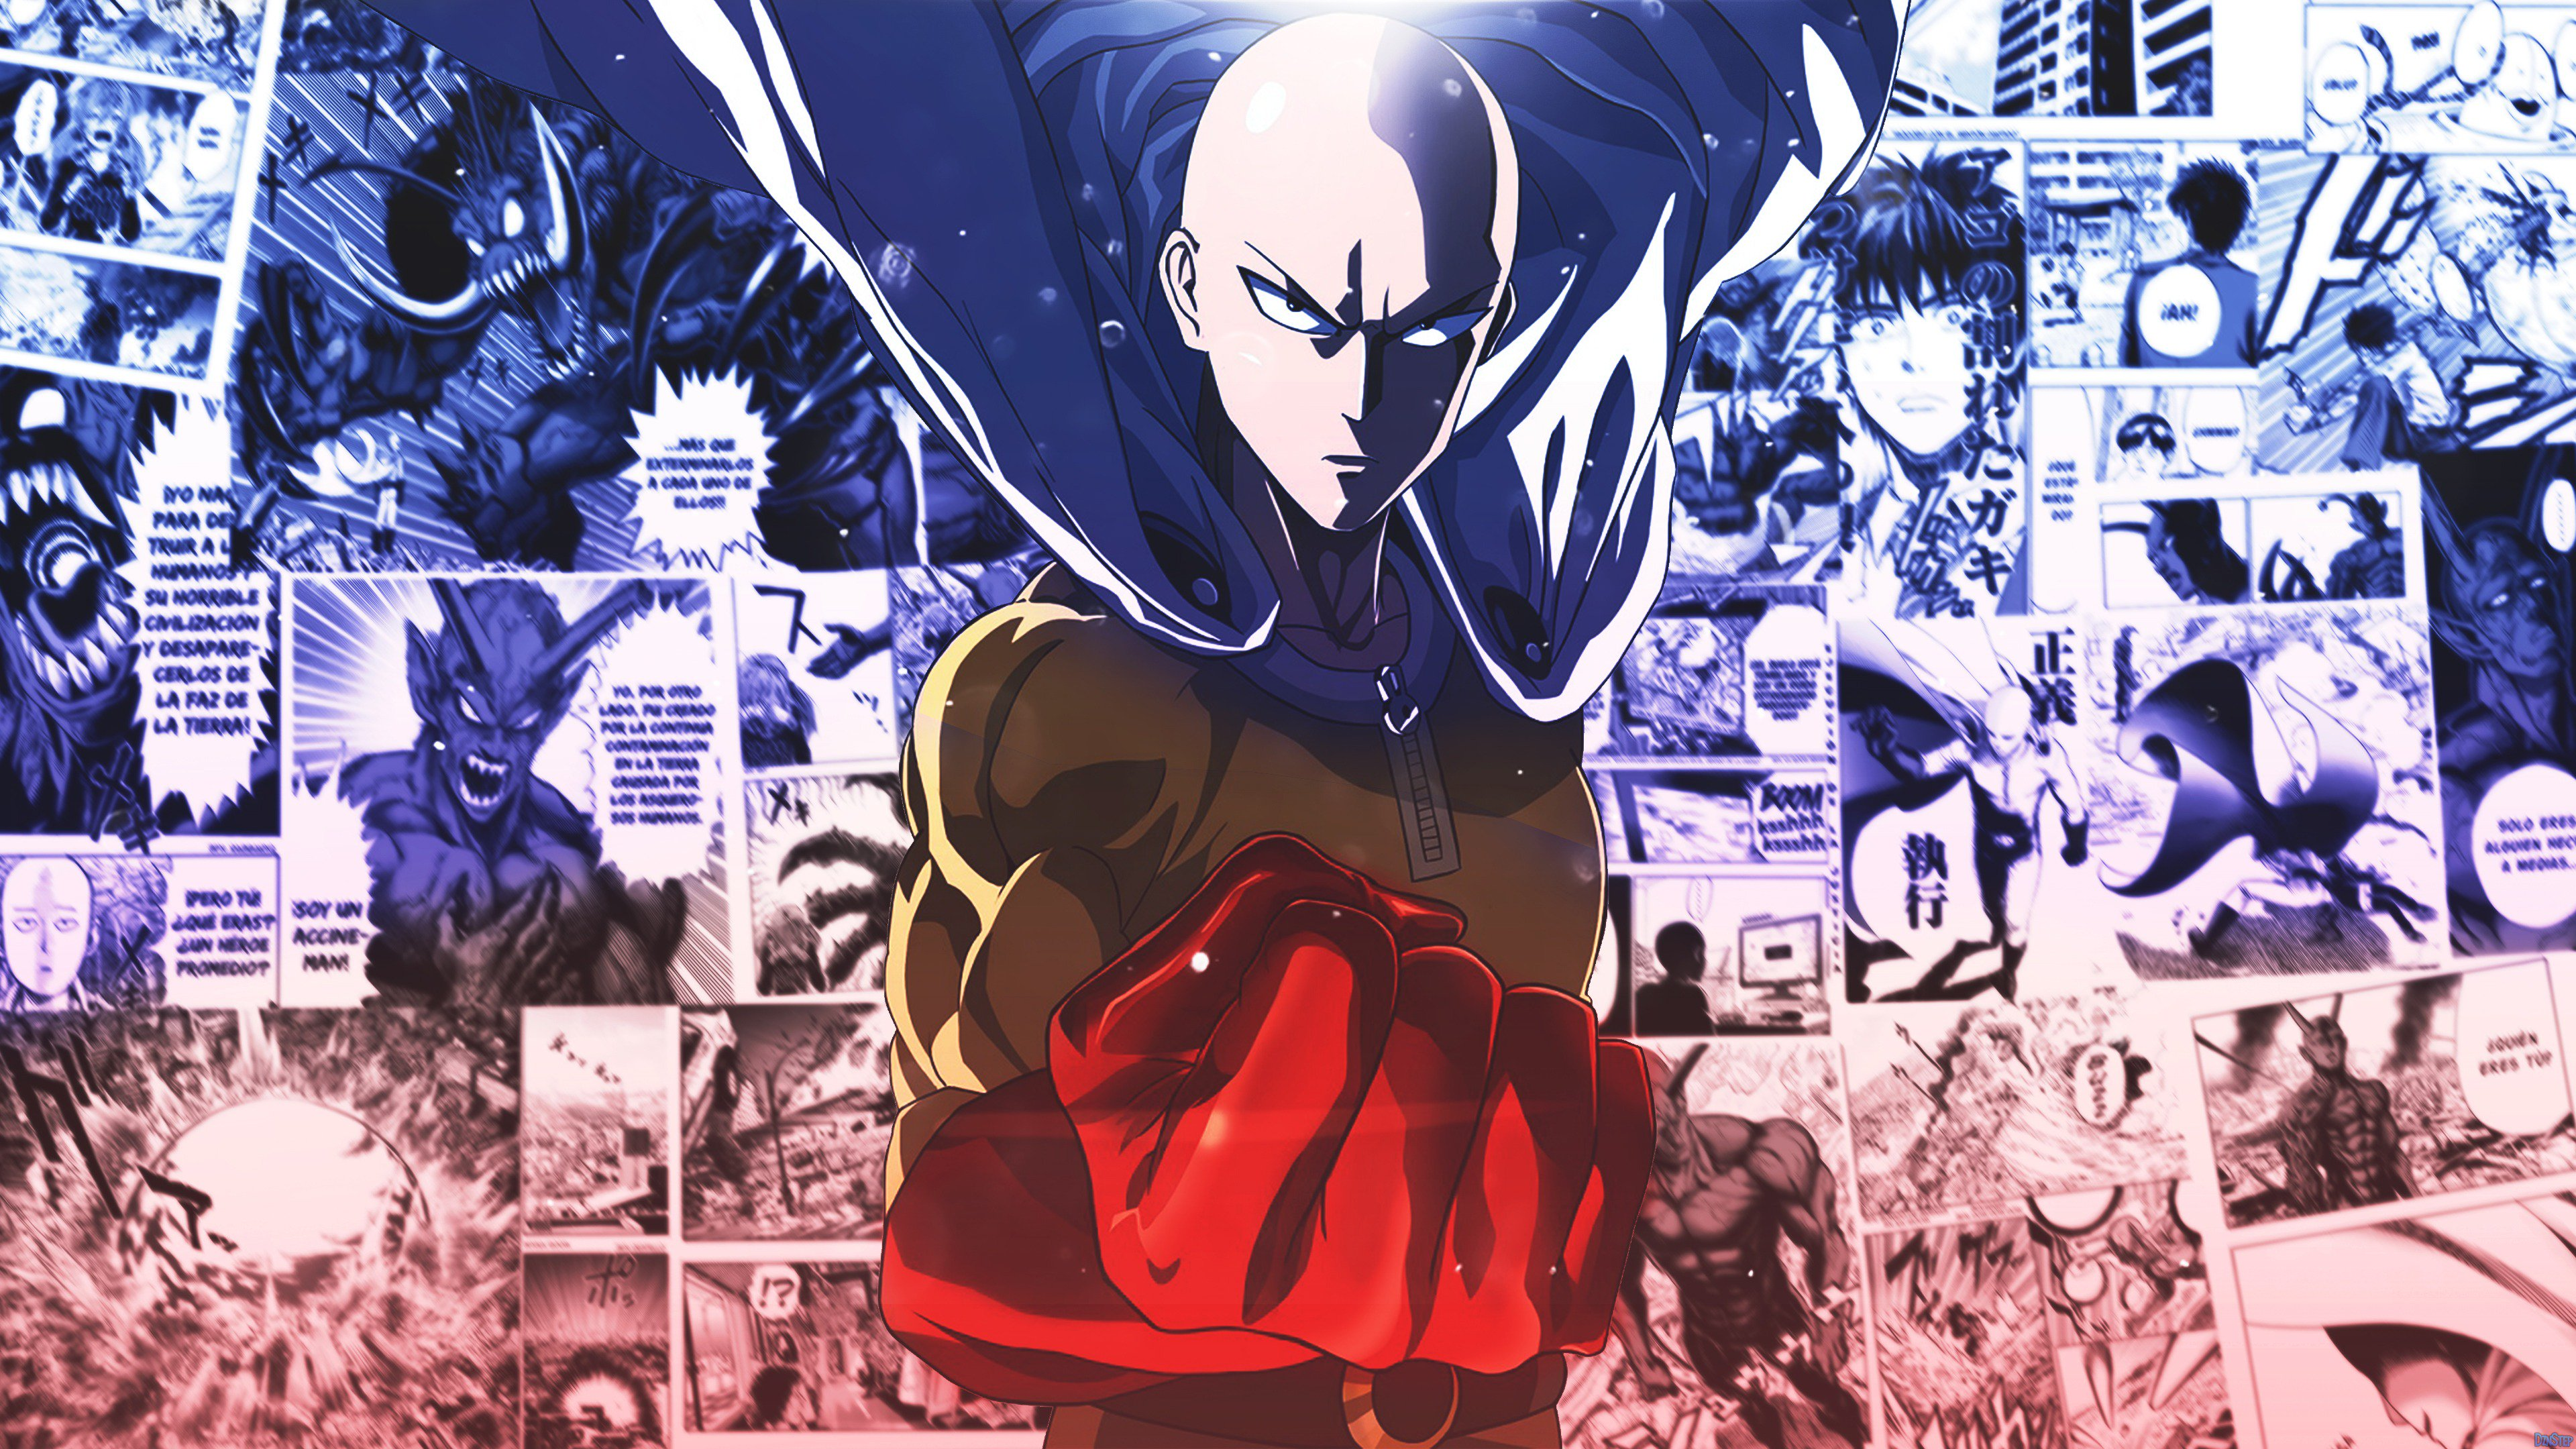 One Punch Man Season 3 Release Date Delay Till 2020 or 2021